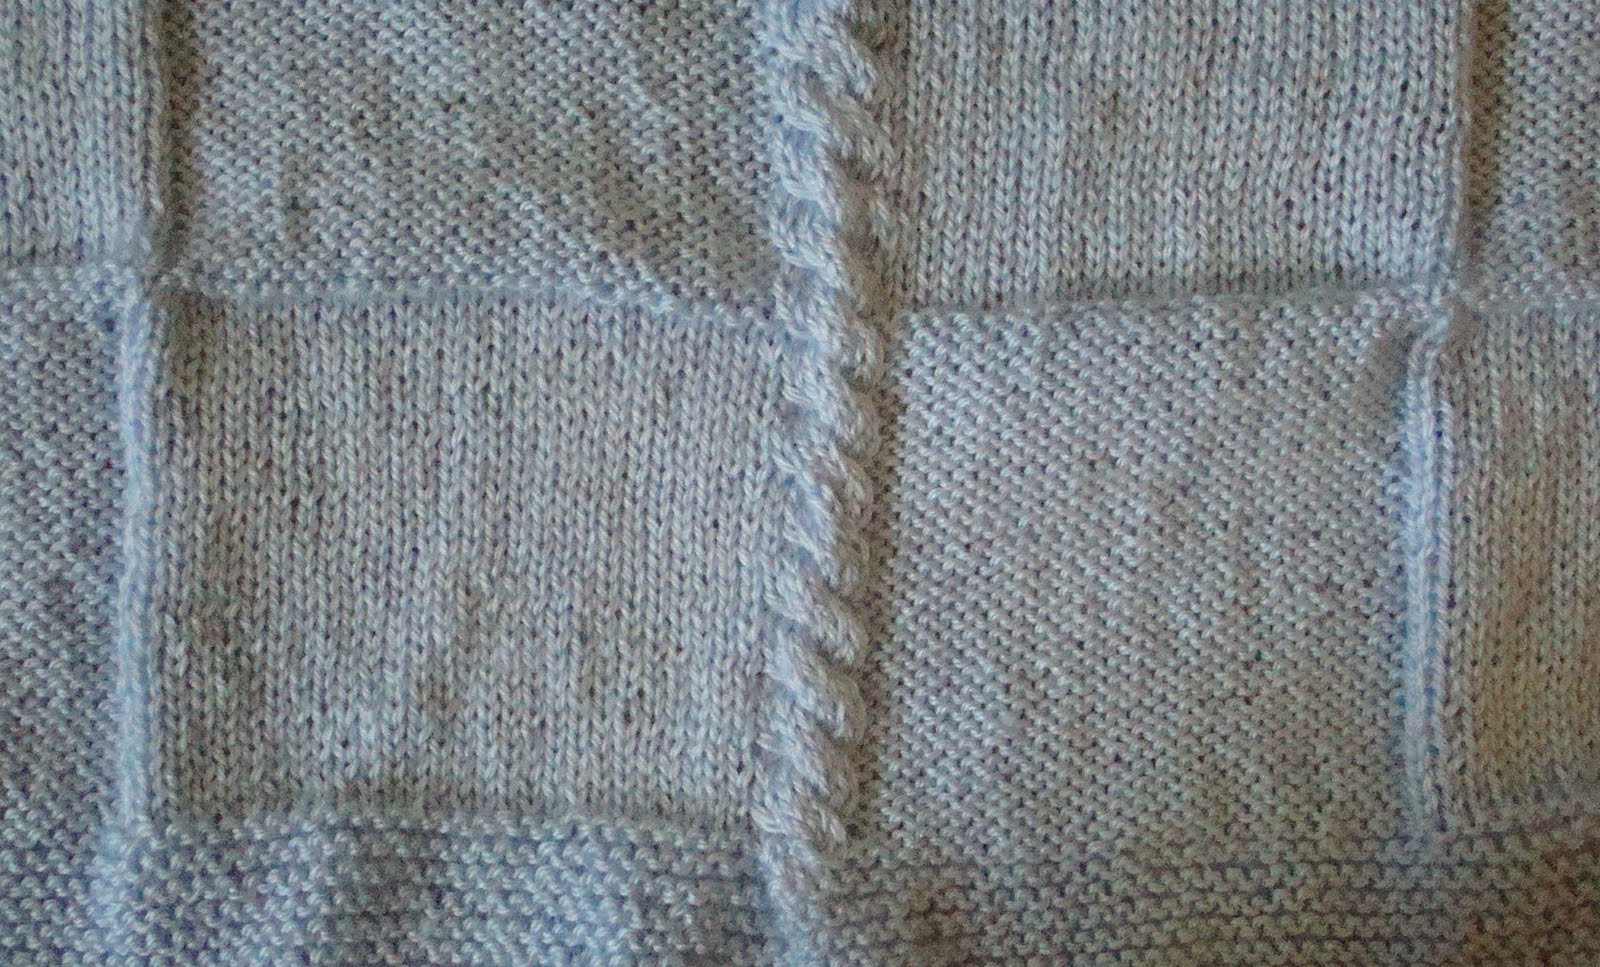 Crafts By Starlight: Knit Baby Blanket - Squares and Cords